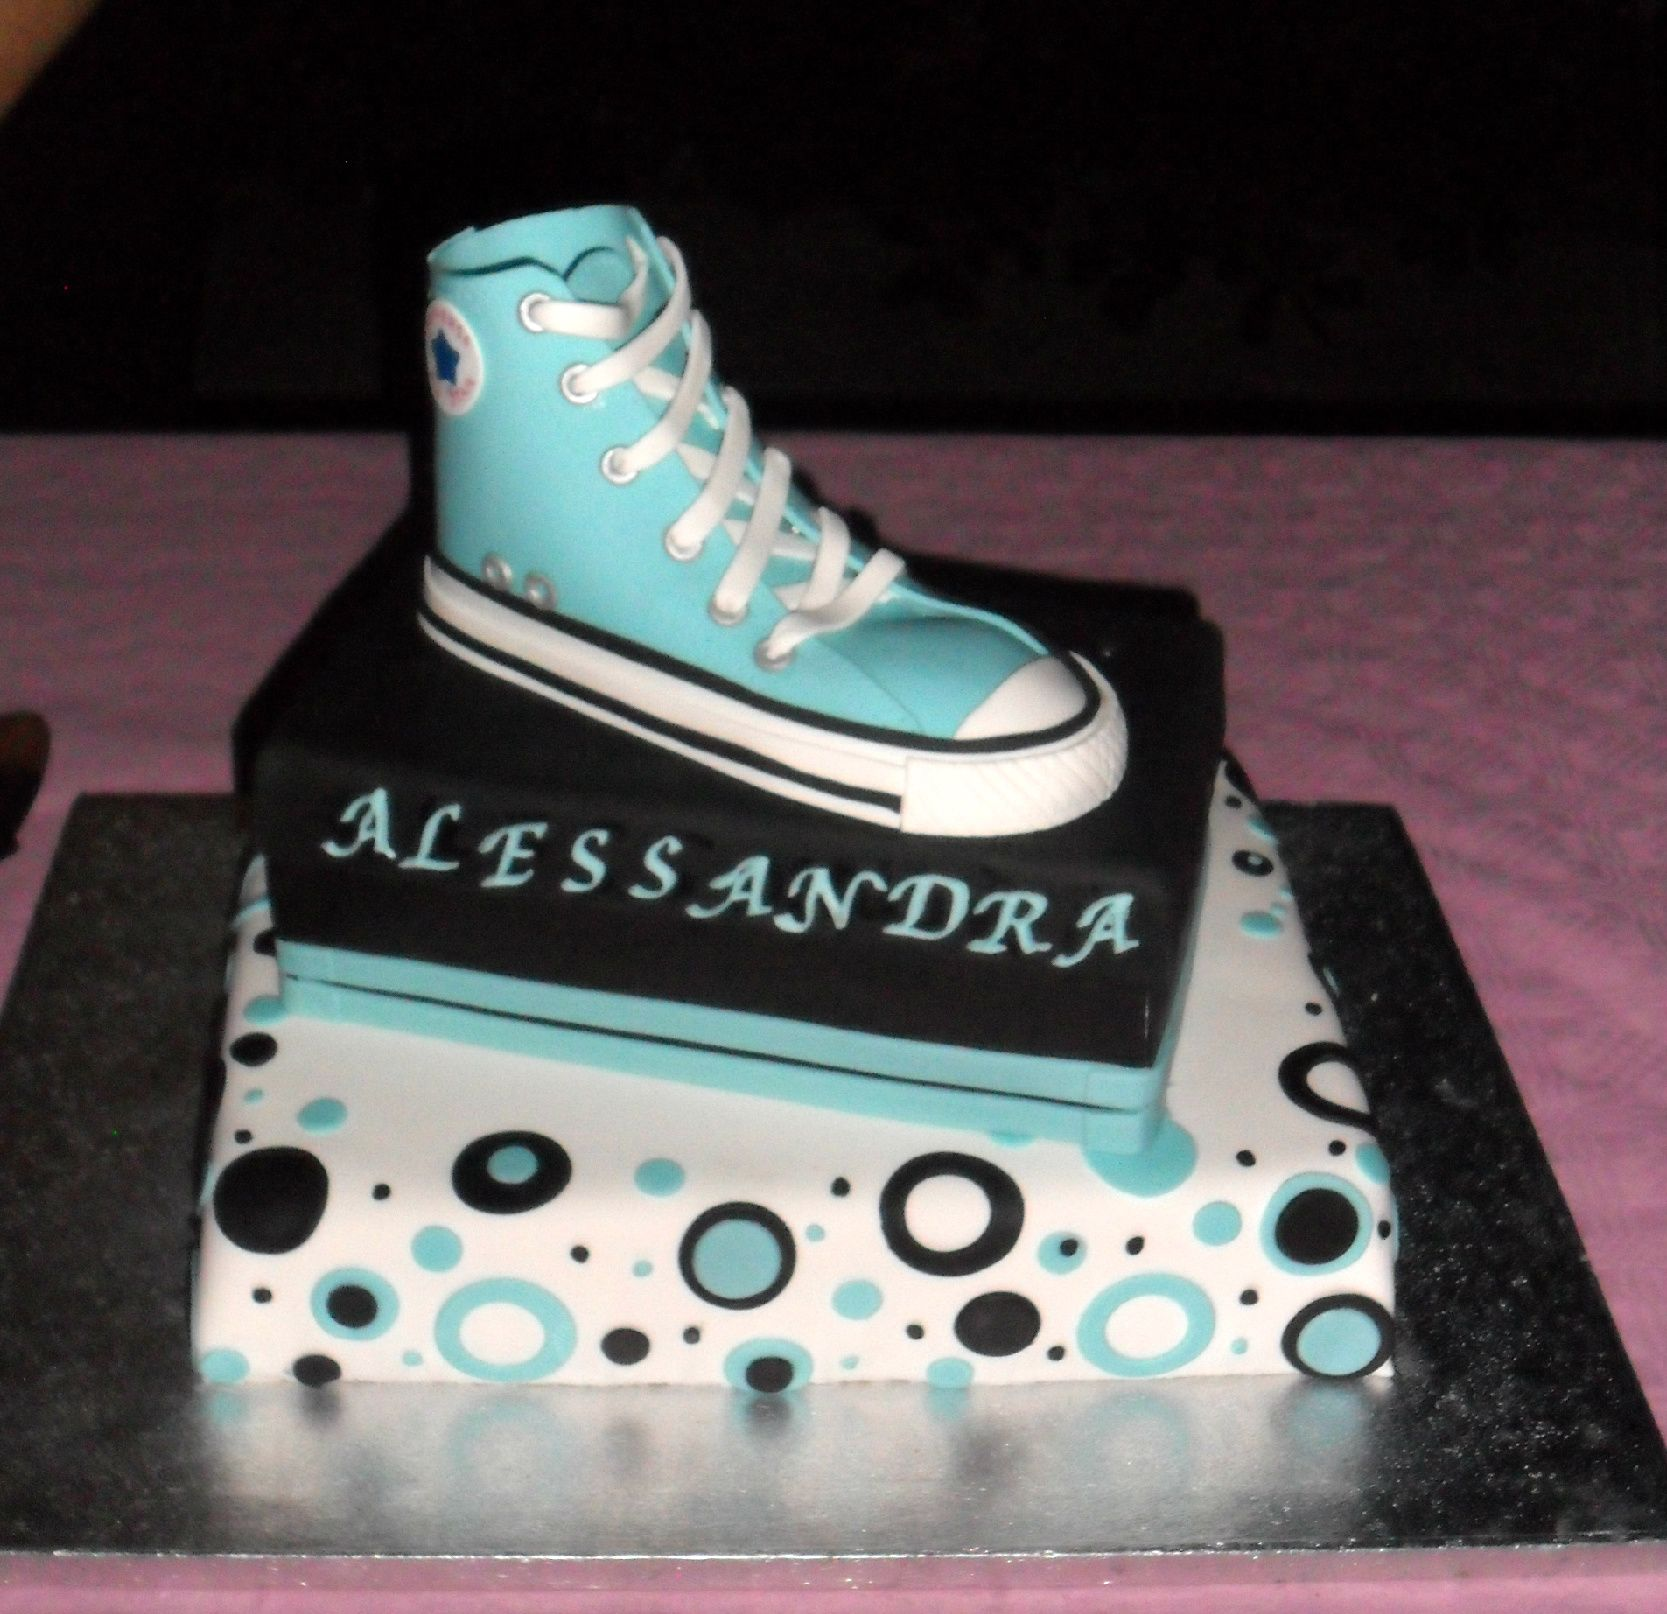 8d17ecdcd3bc03 All star converse cake - All star converse cake for the 13 years of my  daughter